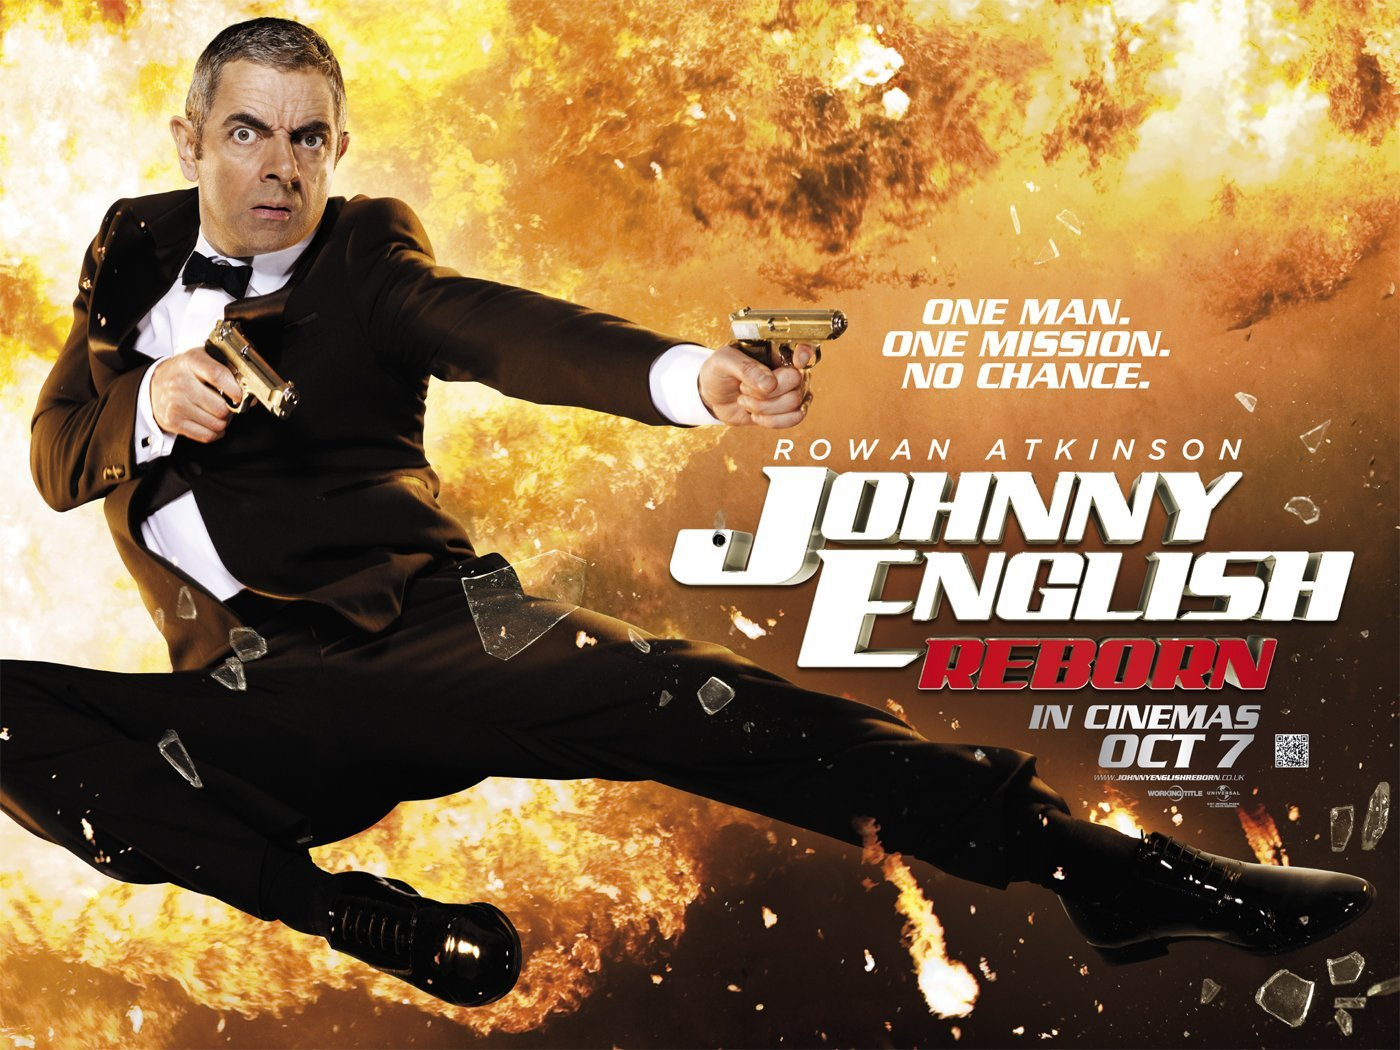 http://www.aceshowbiz.com/images/still/johnny-english-reborn-poster03.jpg